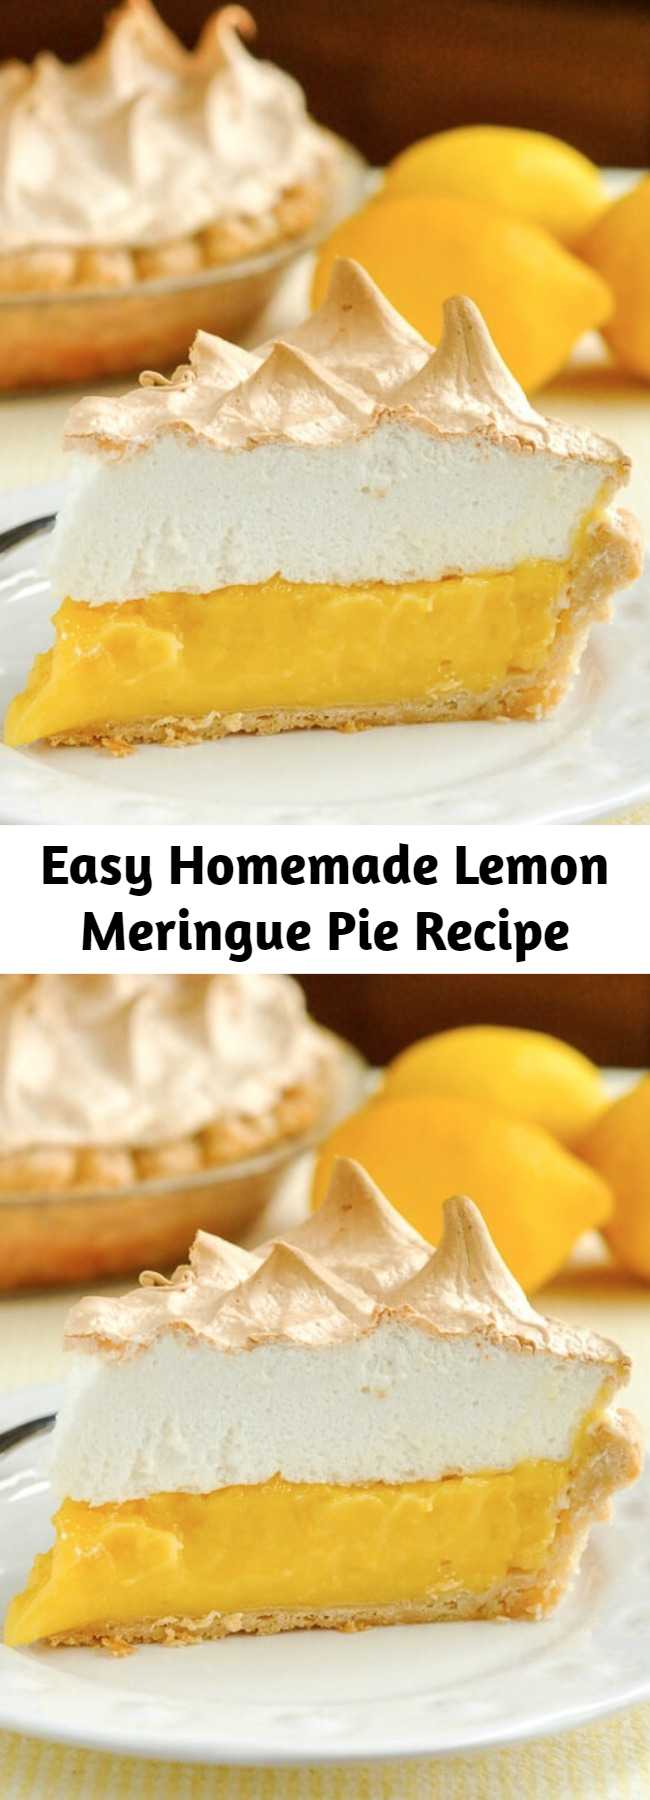 Easy Homemade Lemon Meringue Pie Recipe - If your pie comes from powder in a box, STOP! A fantastic homemade lemon meringue pie, made completely from scratch, tastes much better and is actually just as easy to prepare.